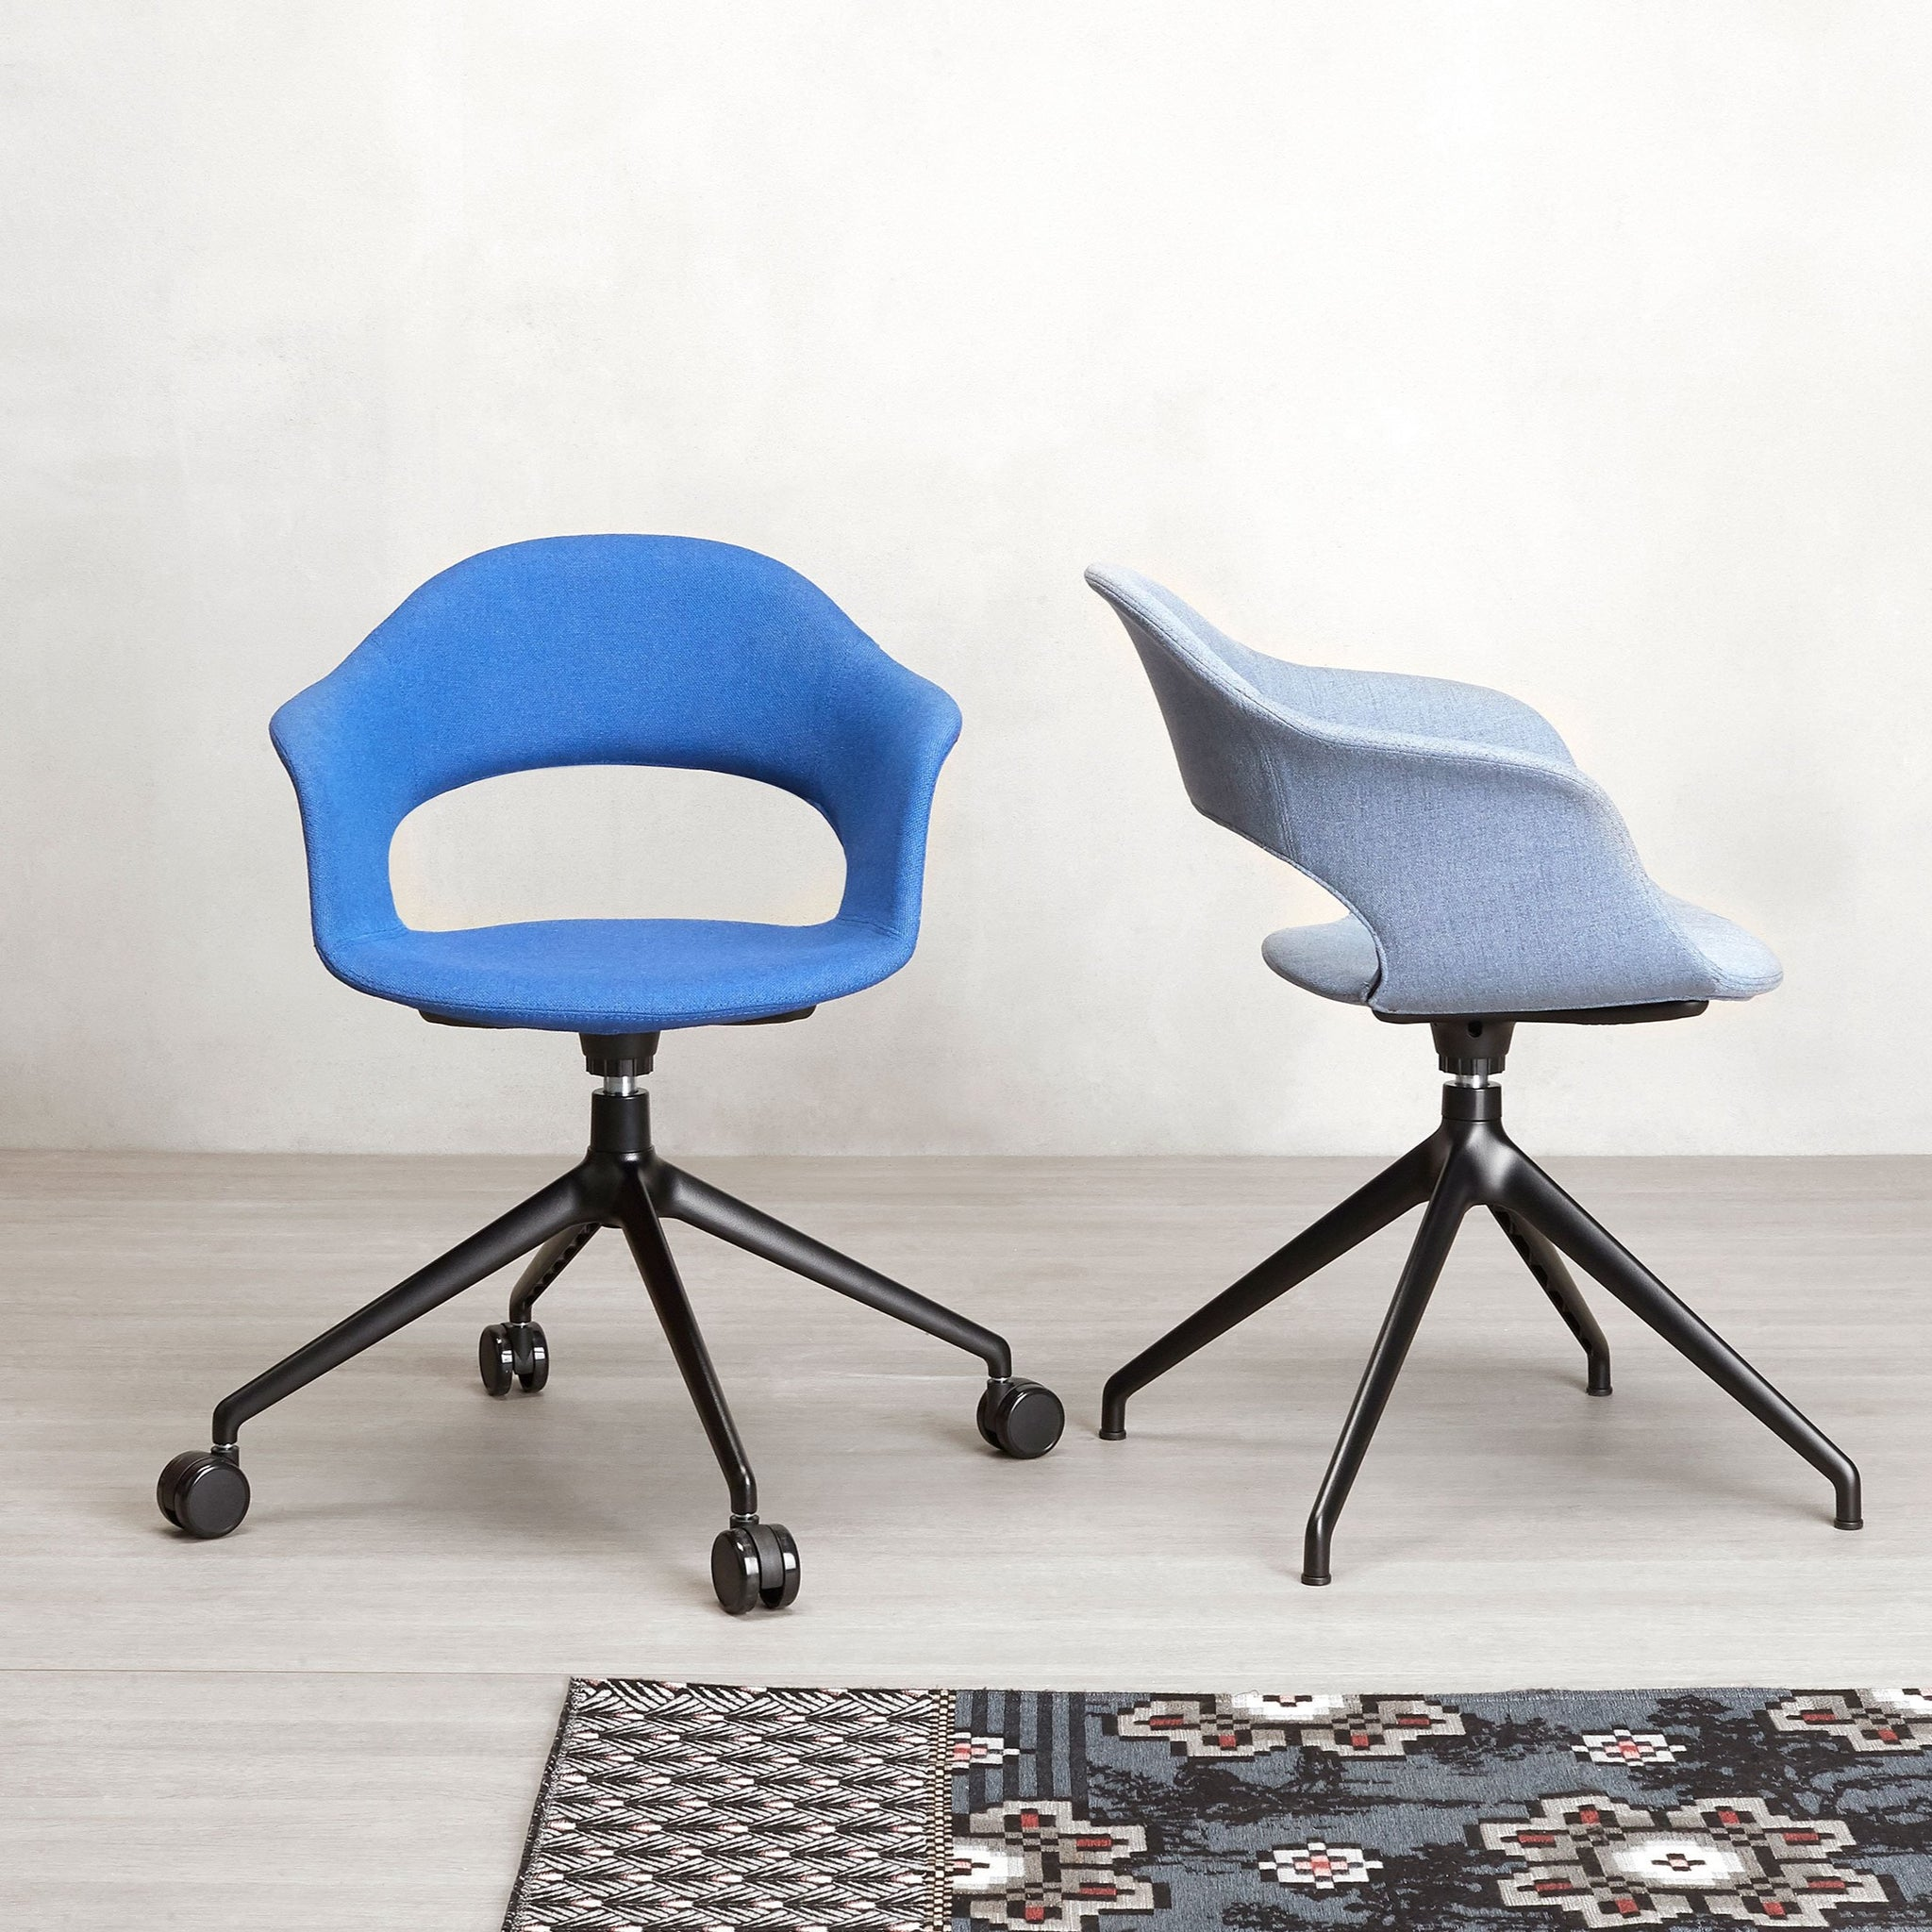 LADY B Home and Office chairs